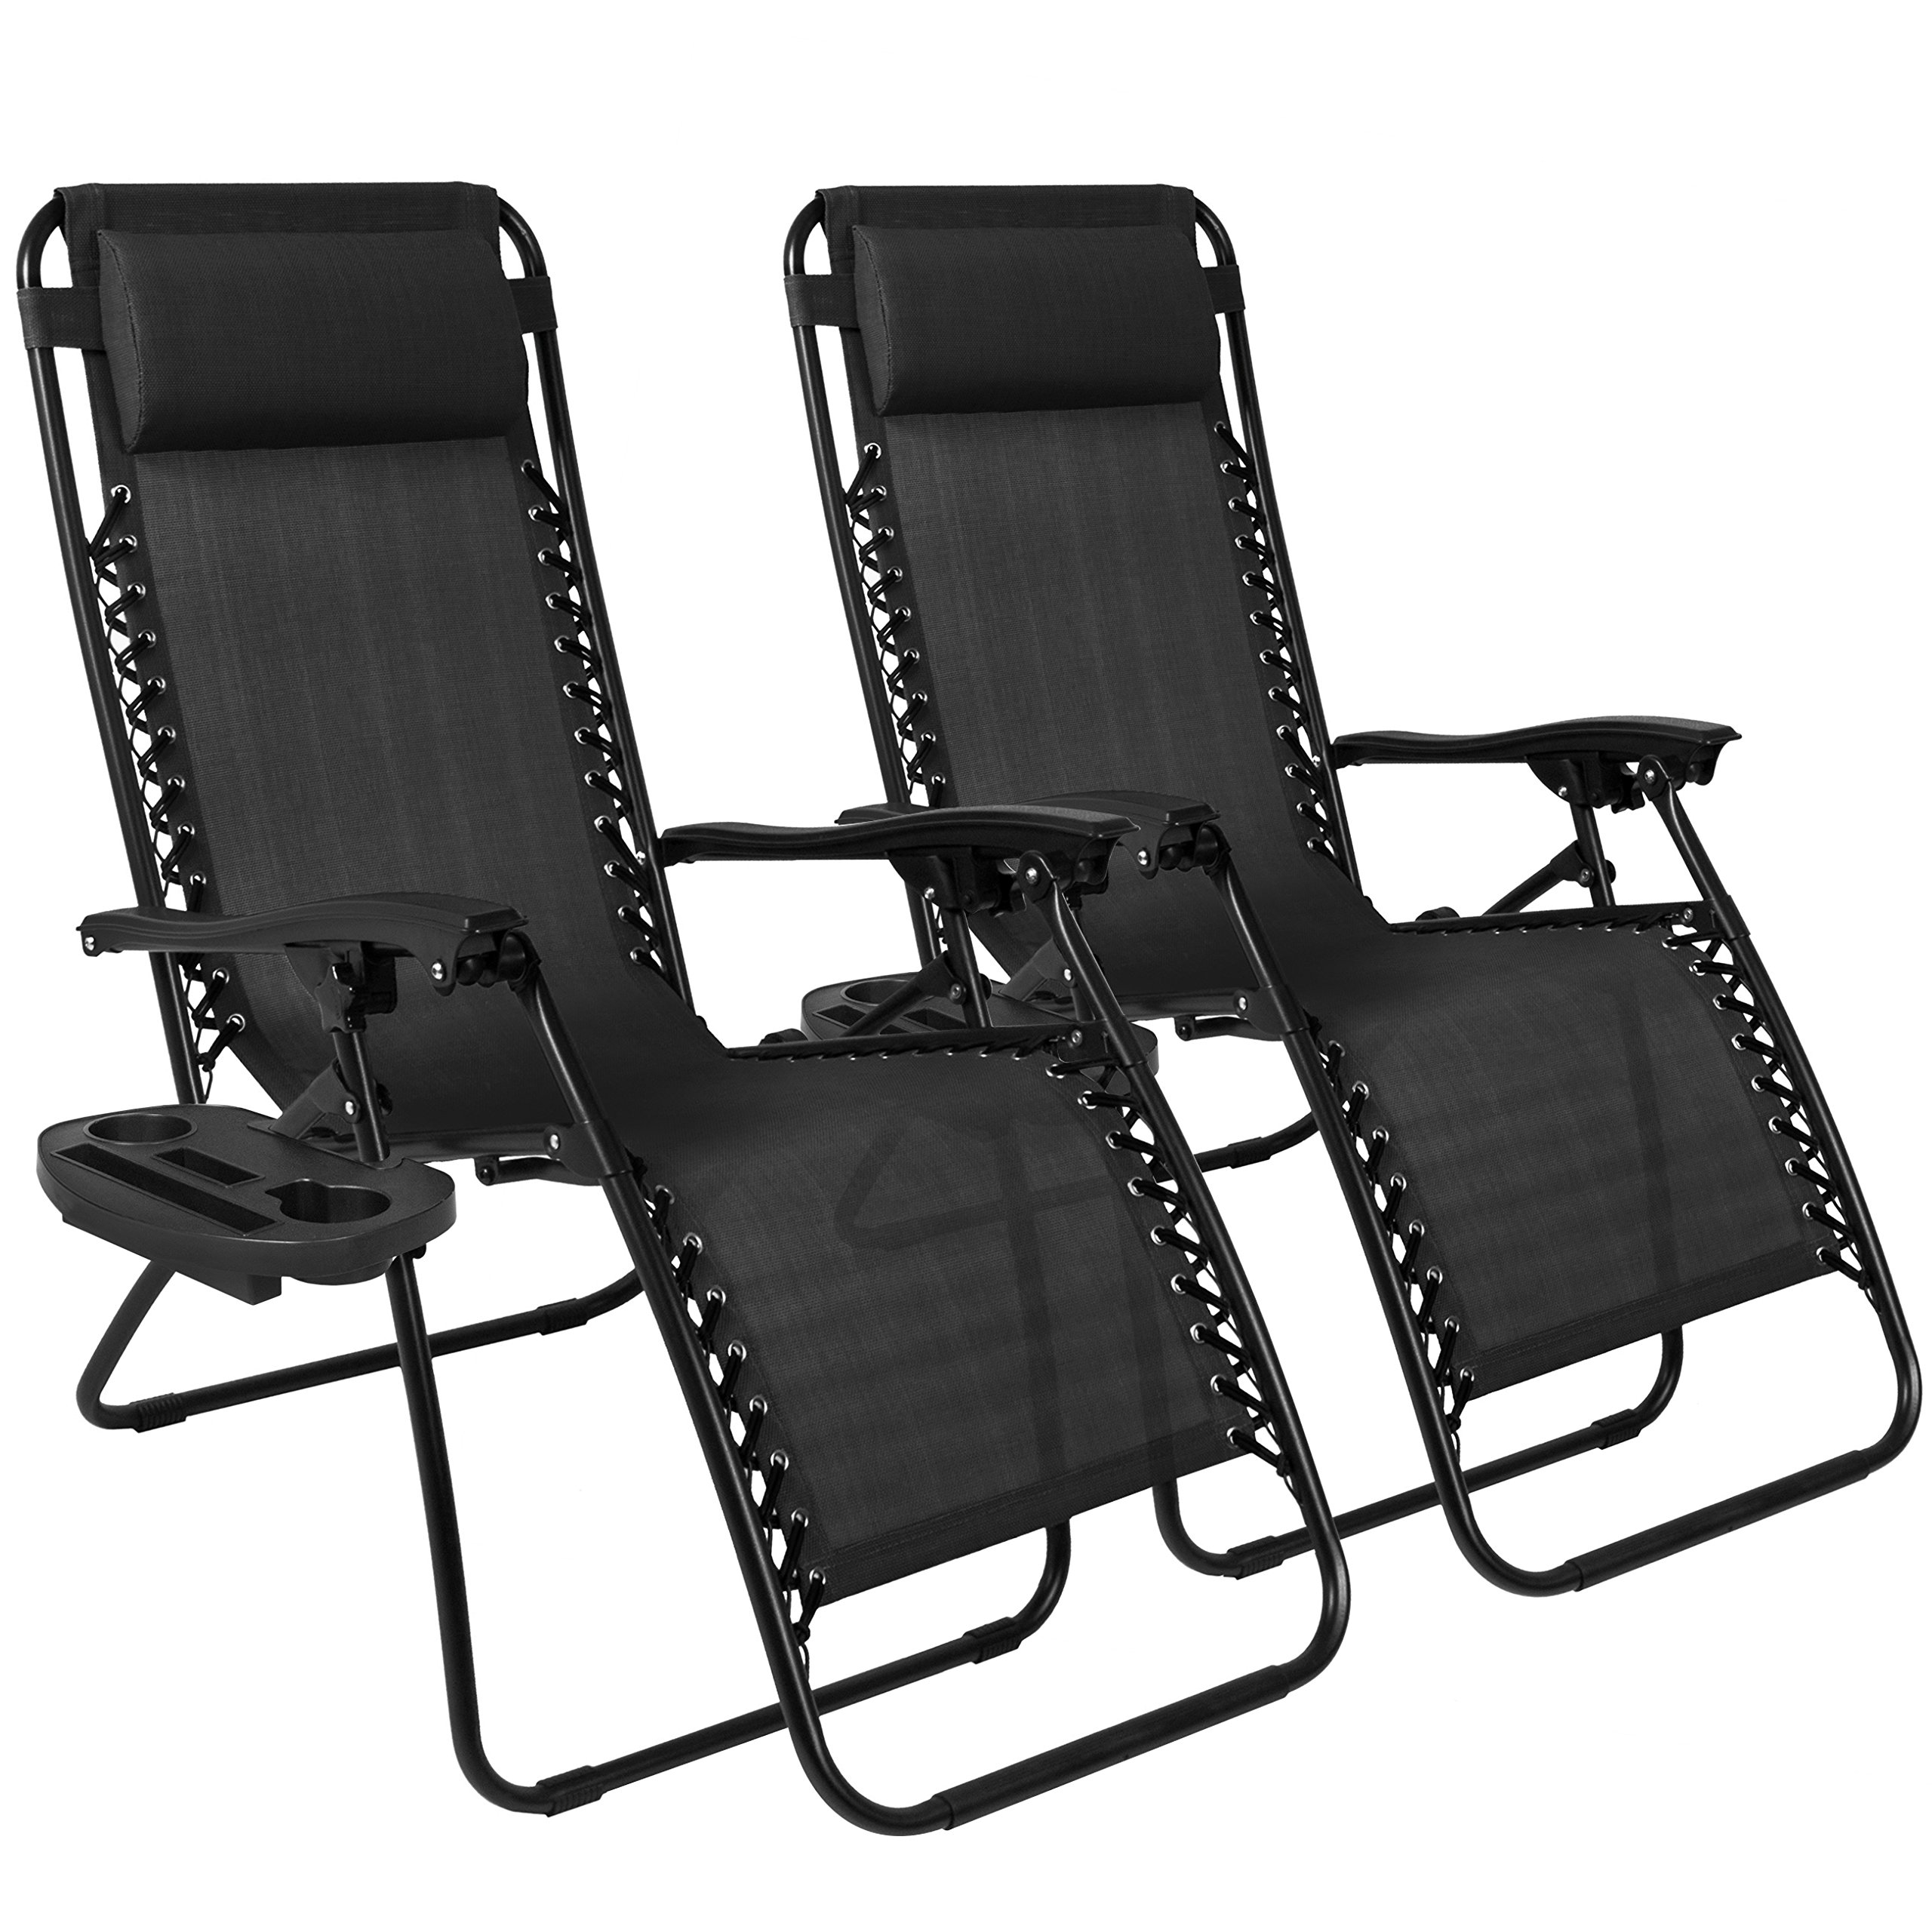 lounge reclining covers lazy cushions chair patio outdoor seat recliner boy